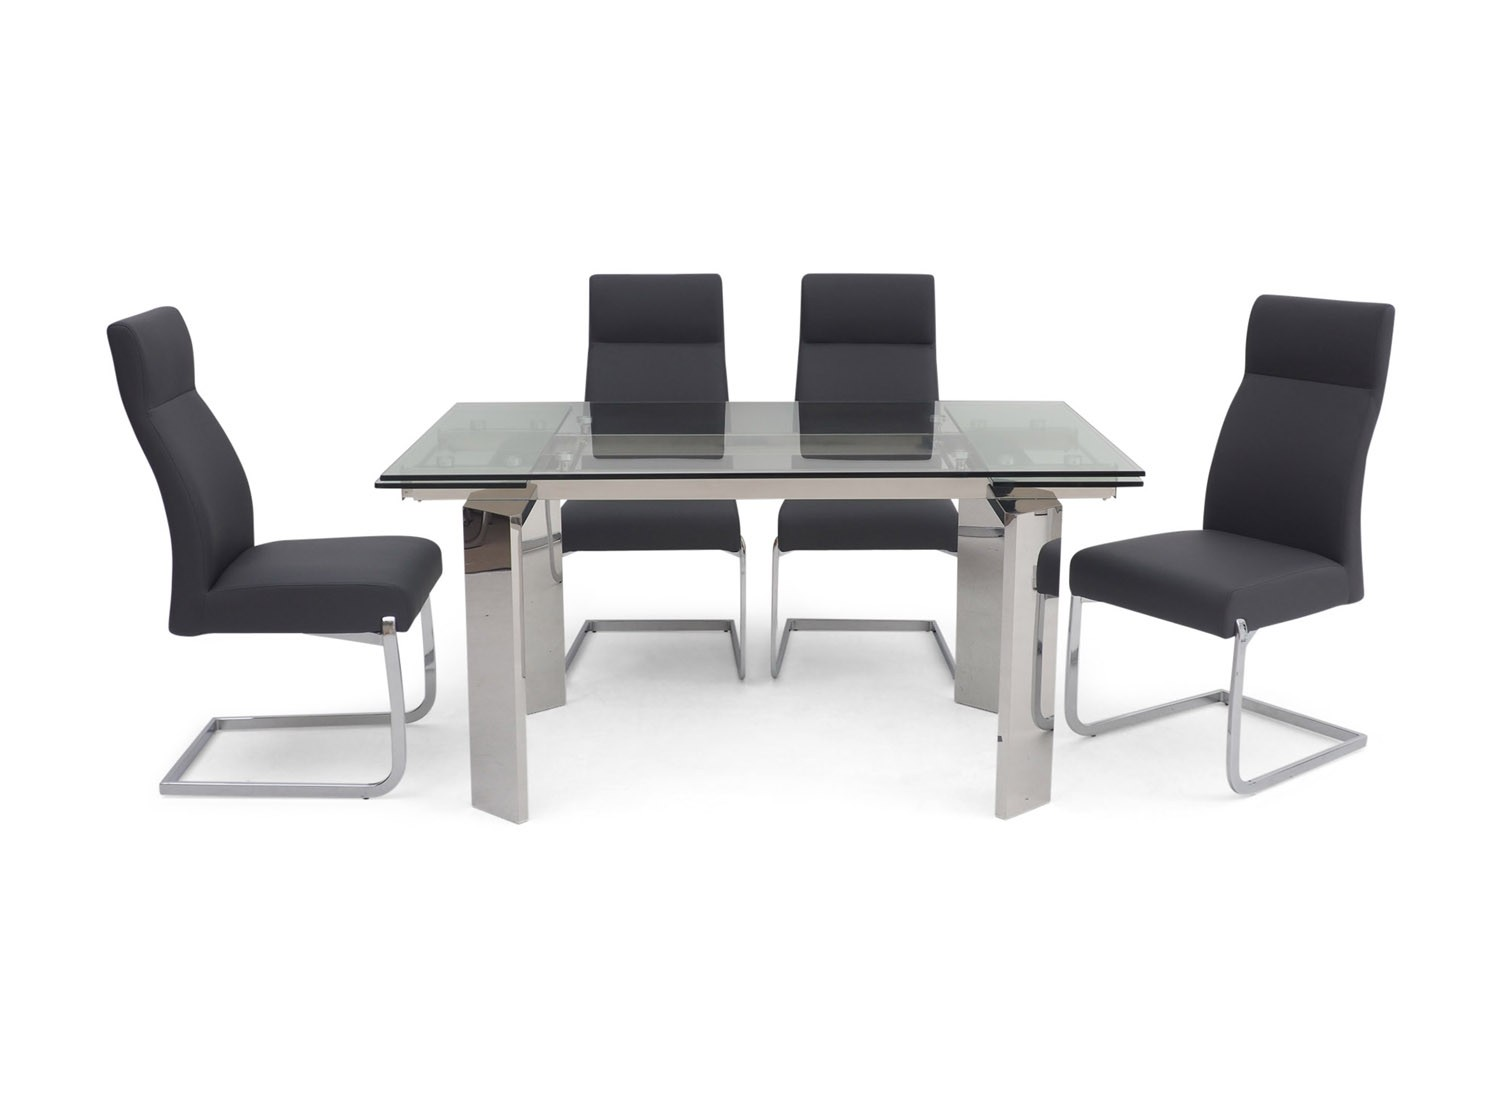 https://www.firstfurniture.co.uk/pub/media/catalog/product/f/a/fairmont_nataliya_ext_clear_glass_dining_table_6_dante_black_chairs_1.jpg